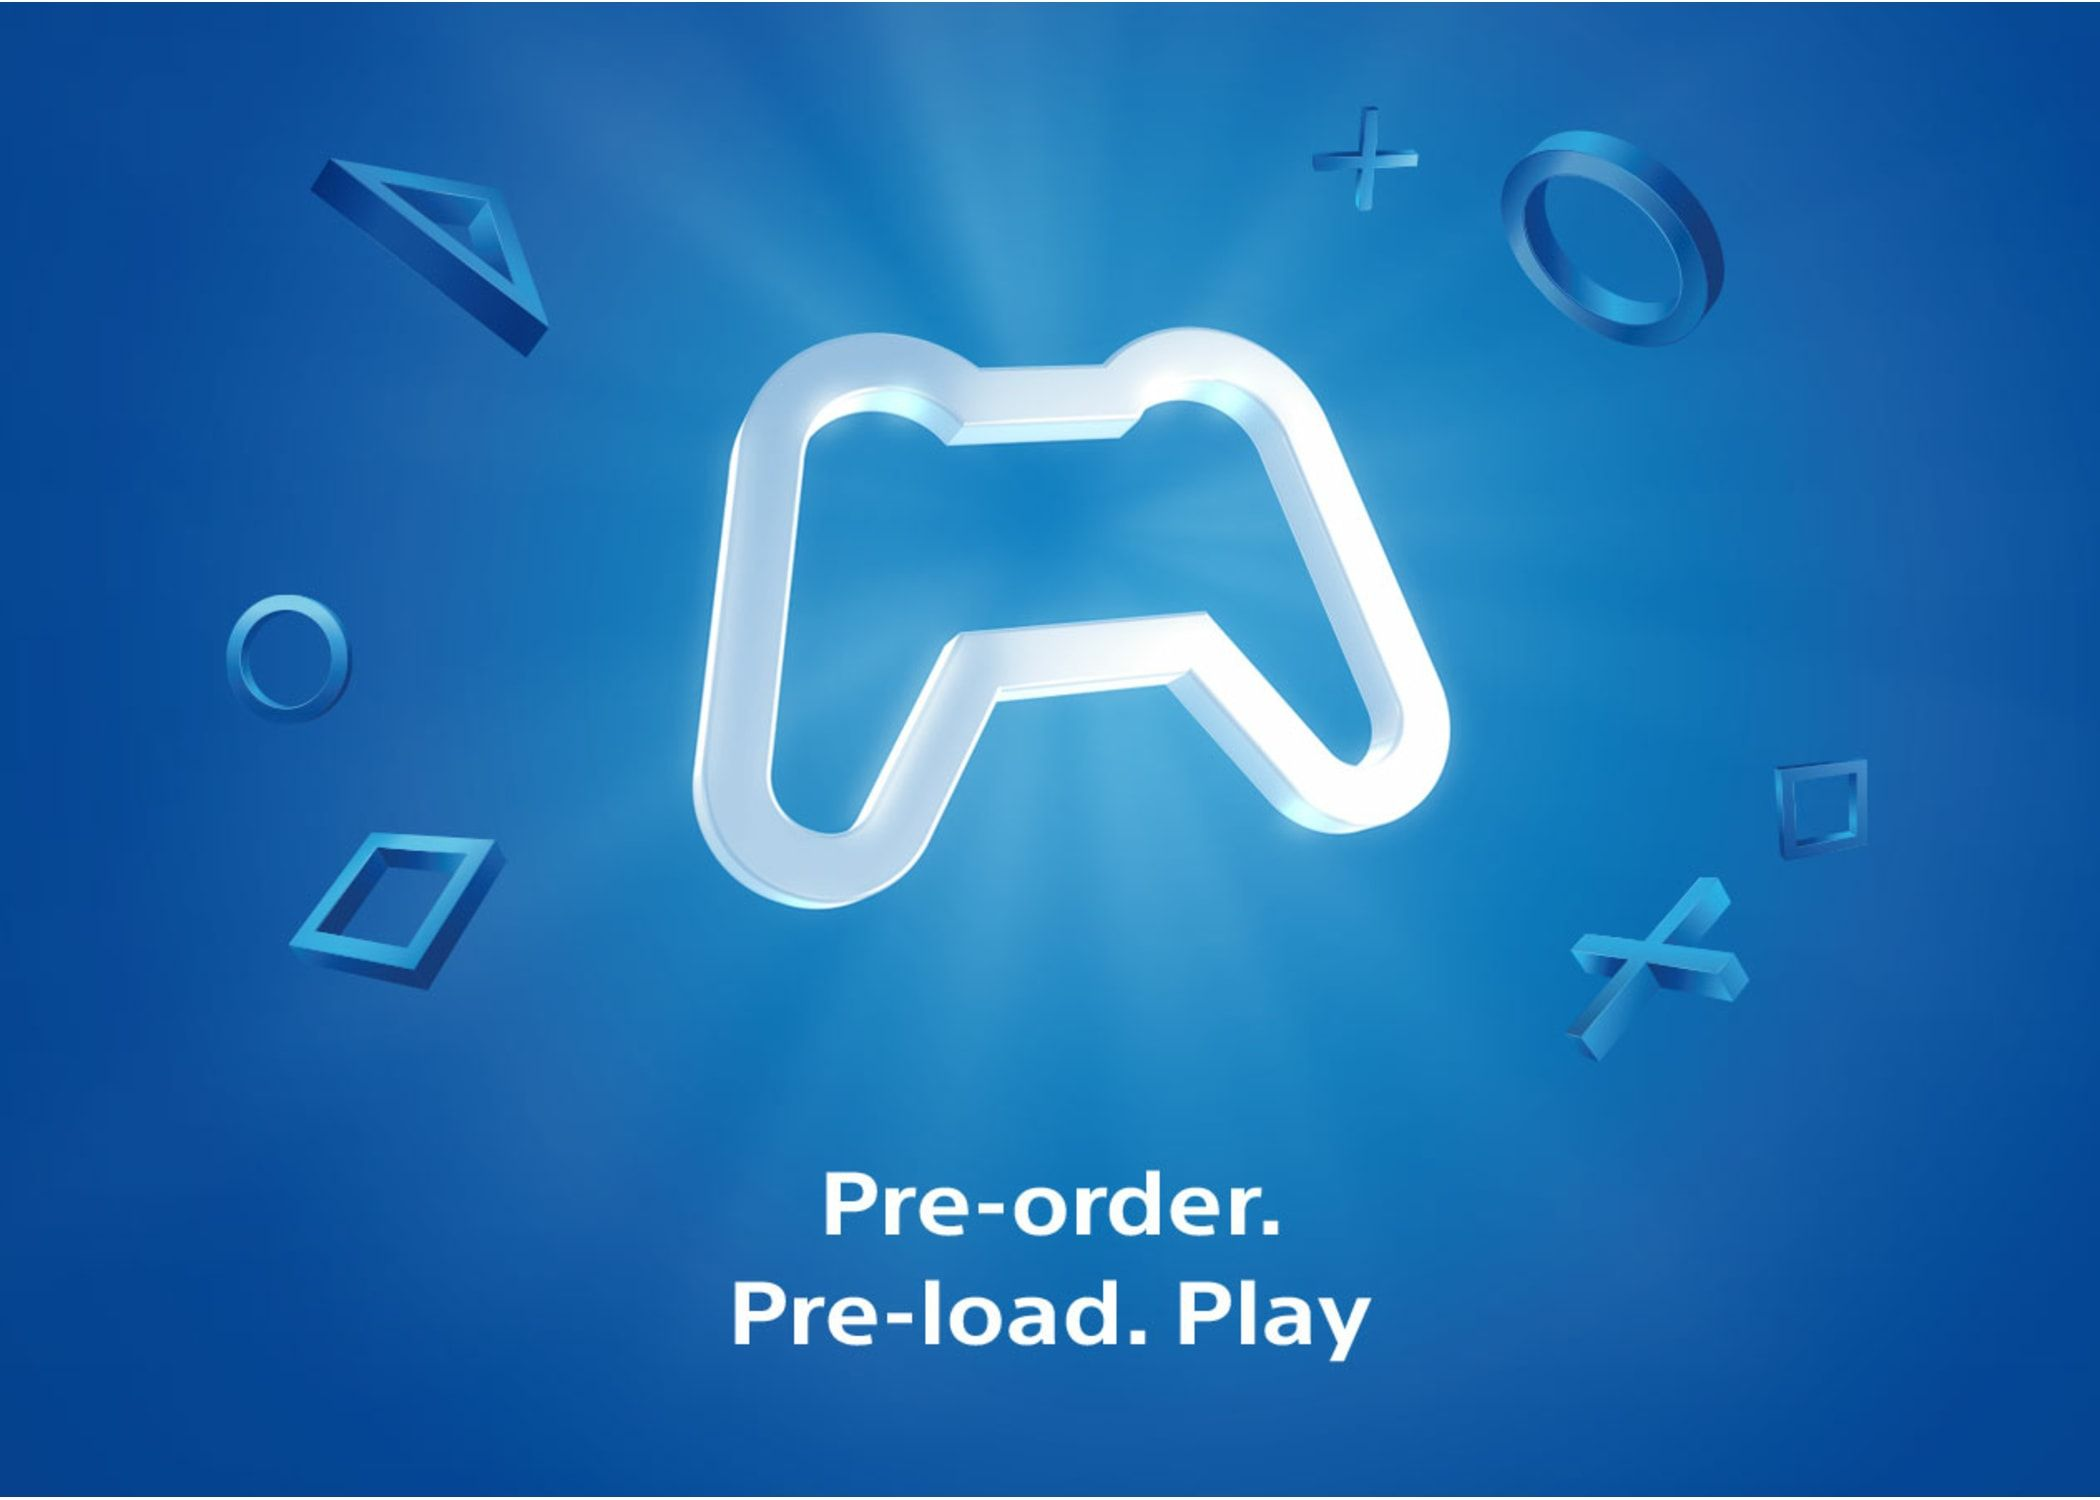 5 Playstation Network Wallet Top Up Business Flyer Networking Creative Business